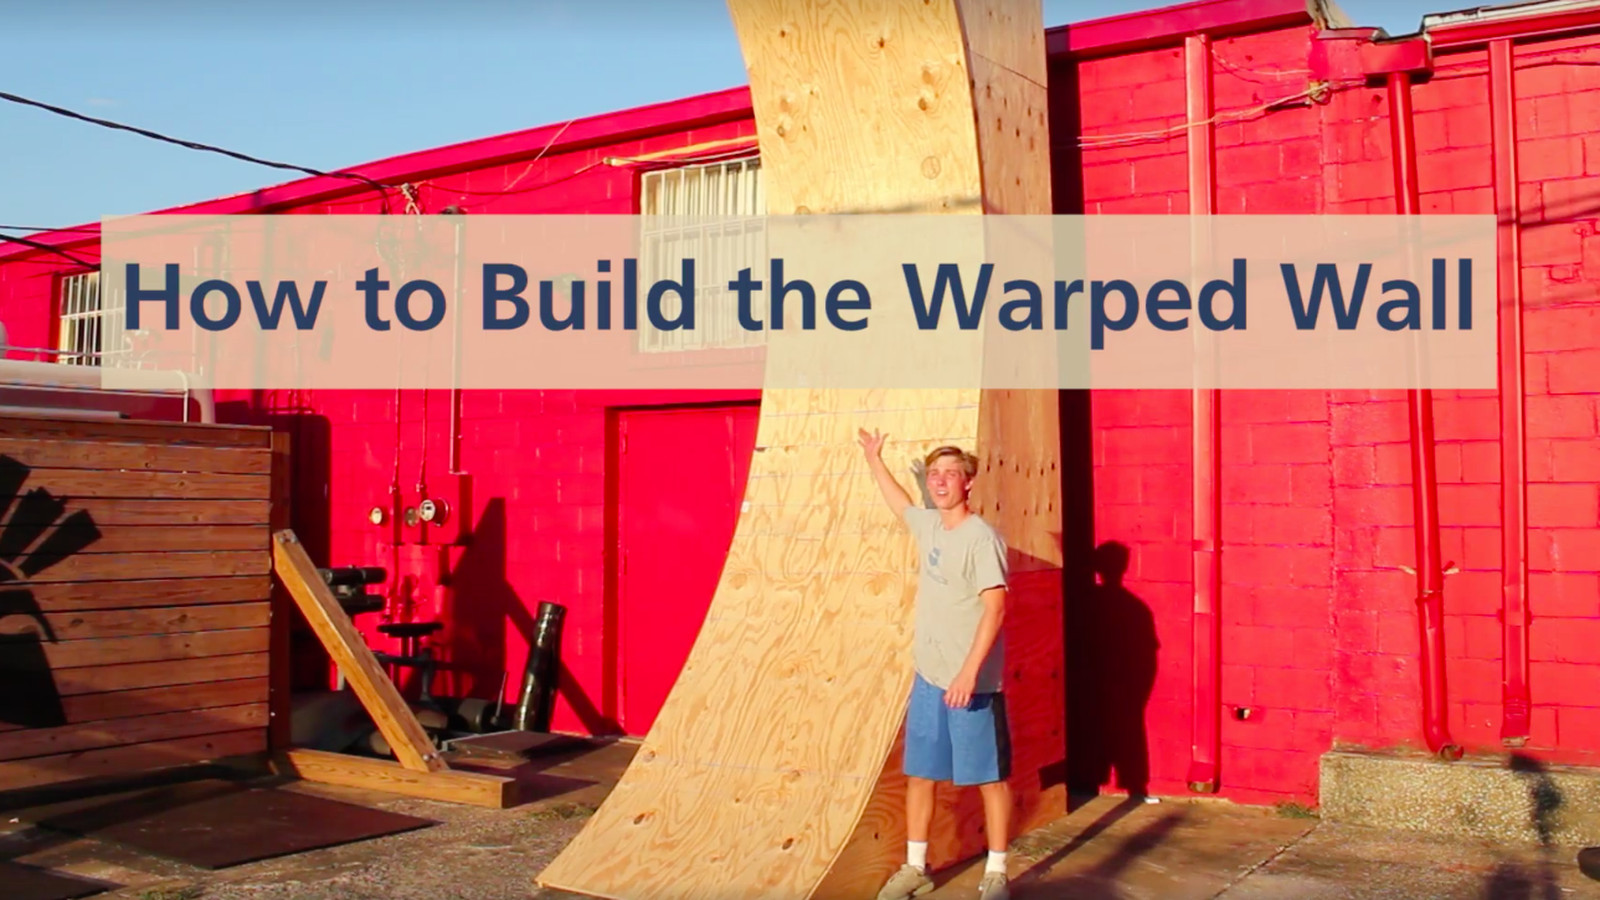 Heres A Warped Wall Being Built In Less Than Minute